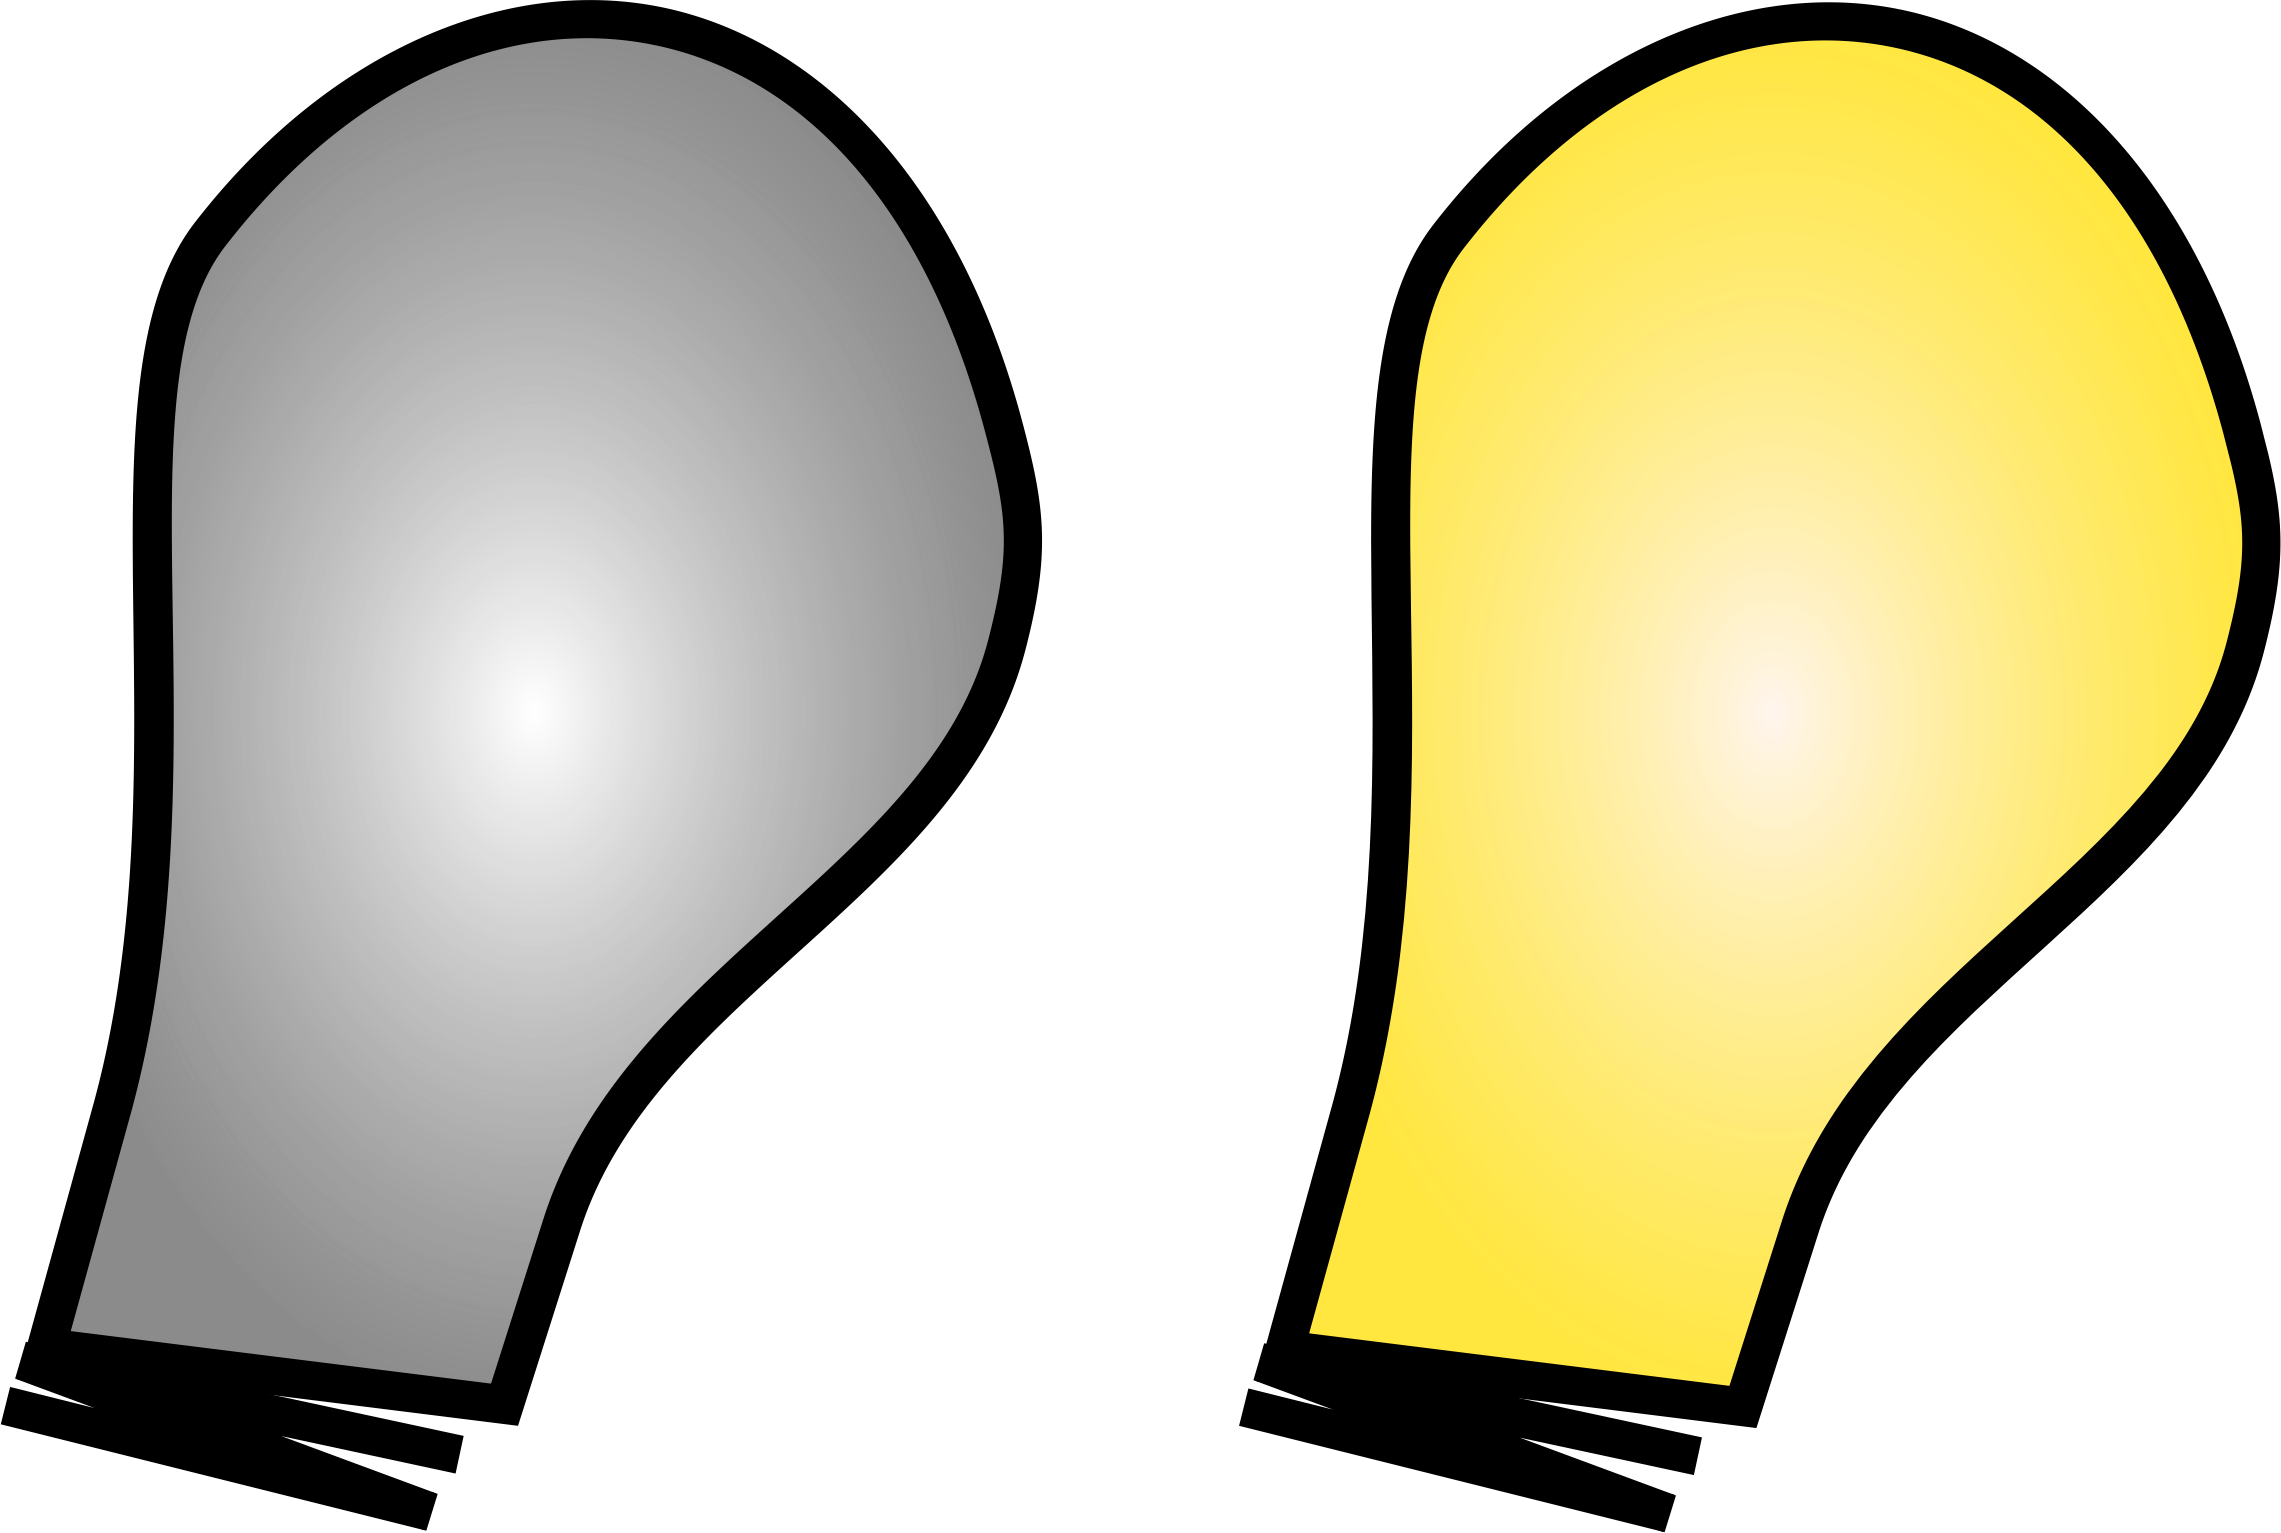 Clipart Simple Light Bulb Onoff